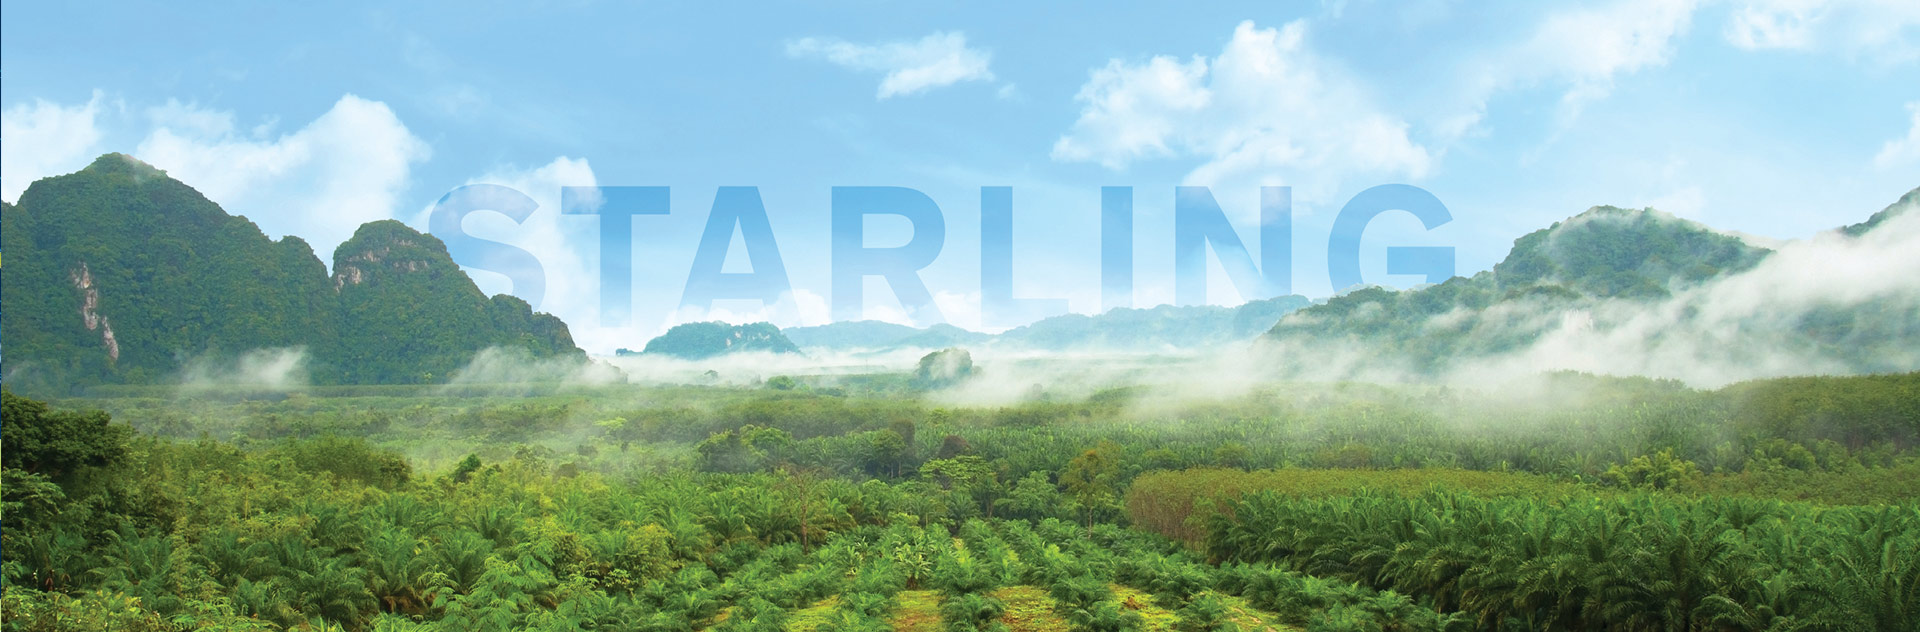 Verify your forest impact with Starling, Airbus forest monitoring services